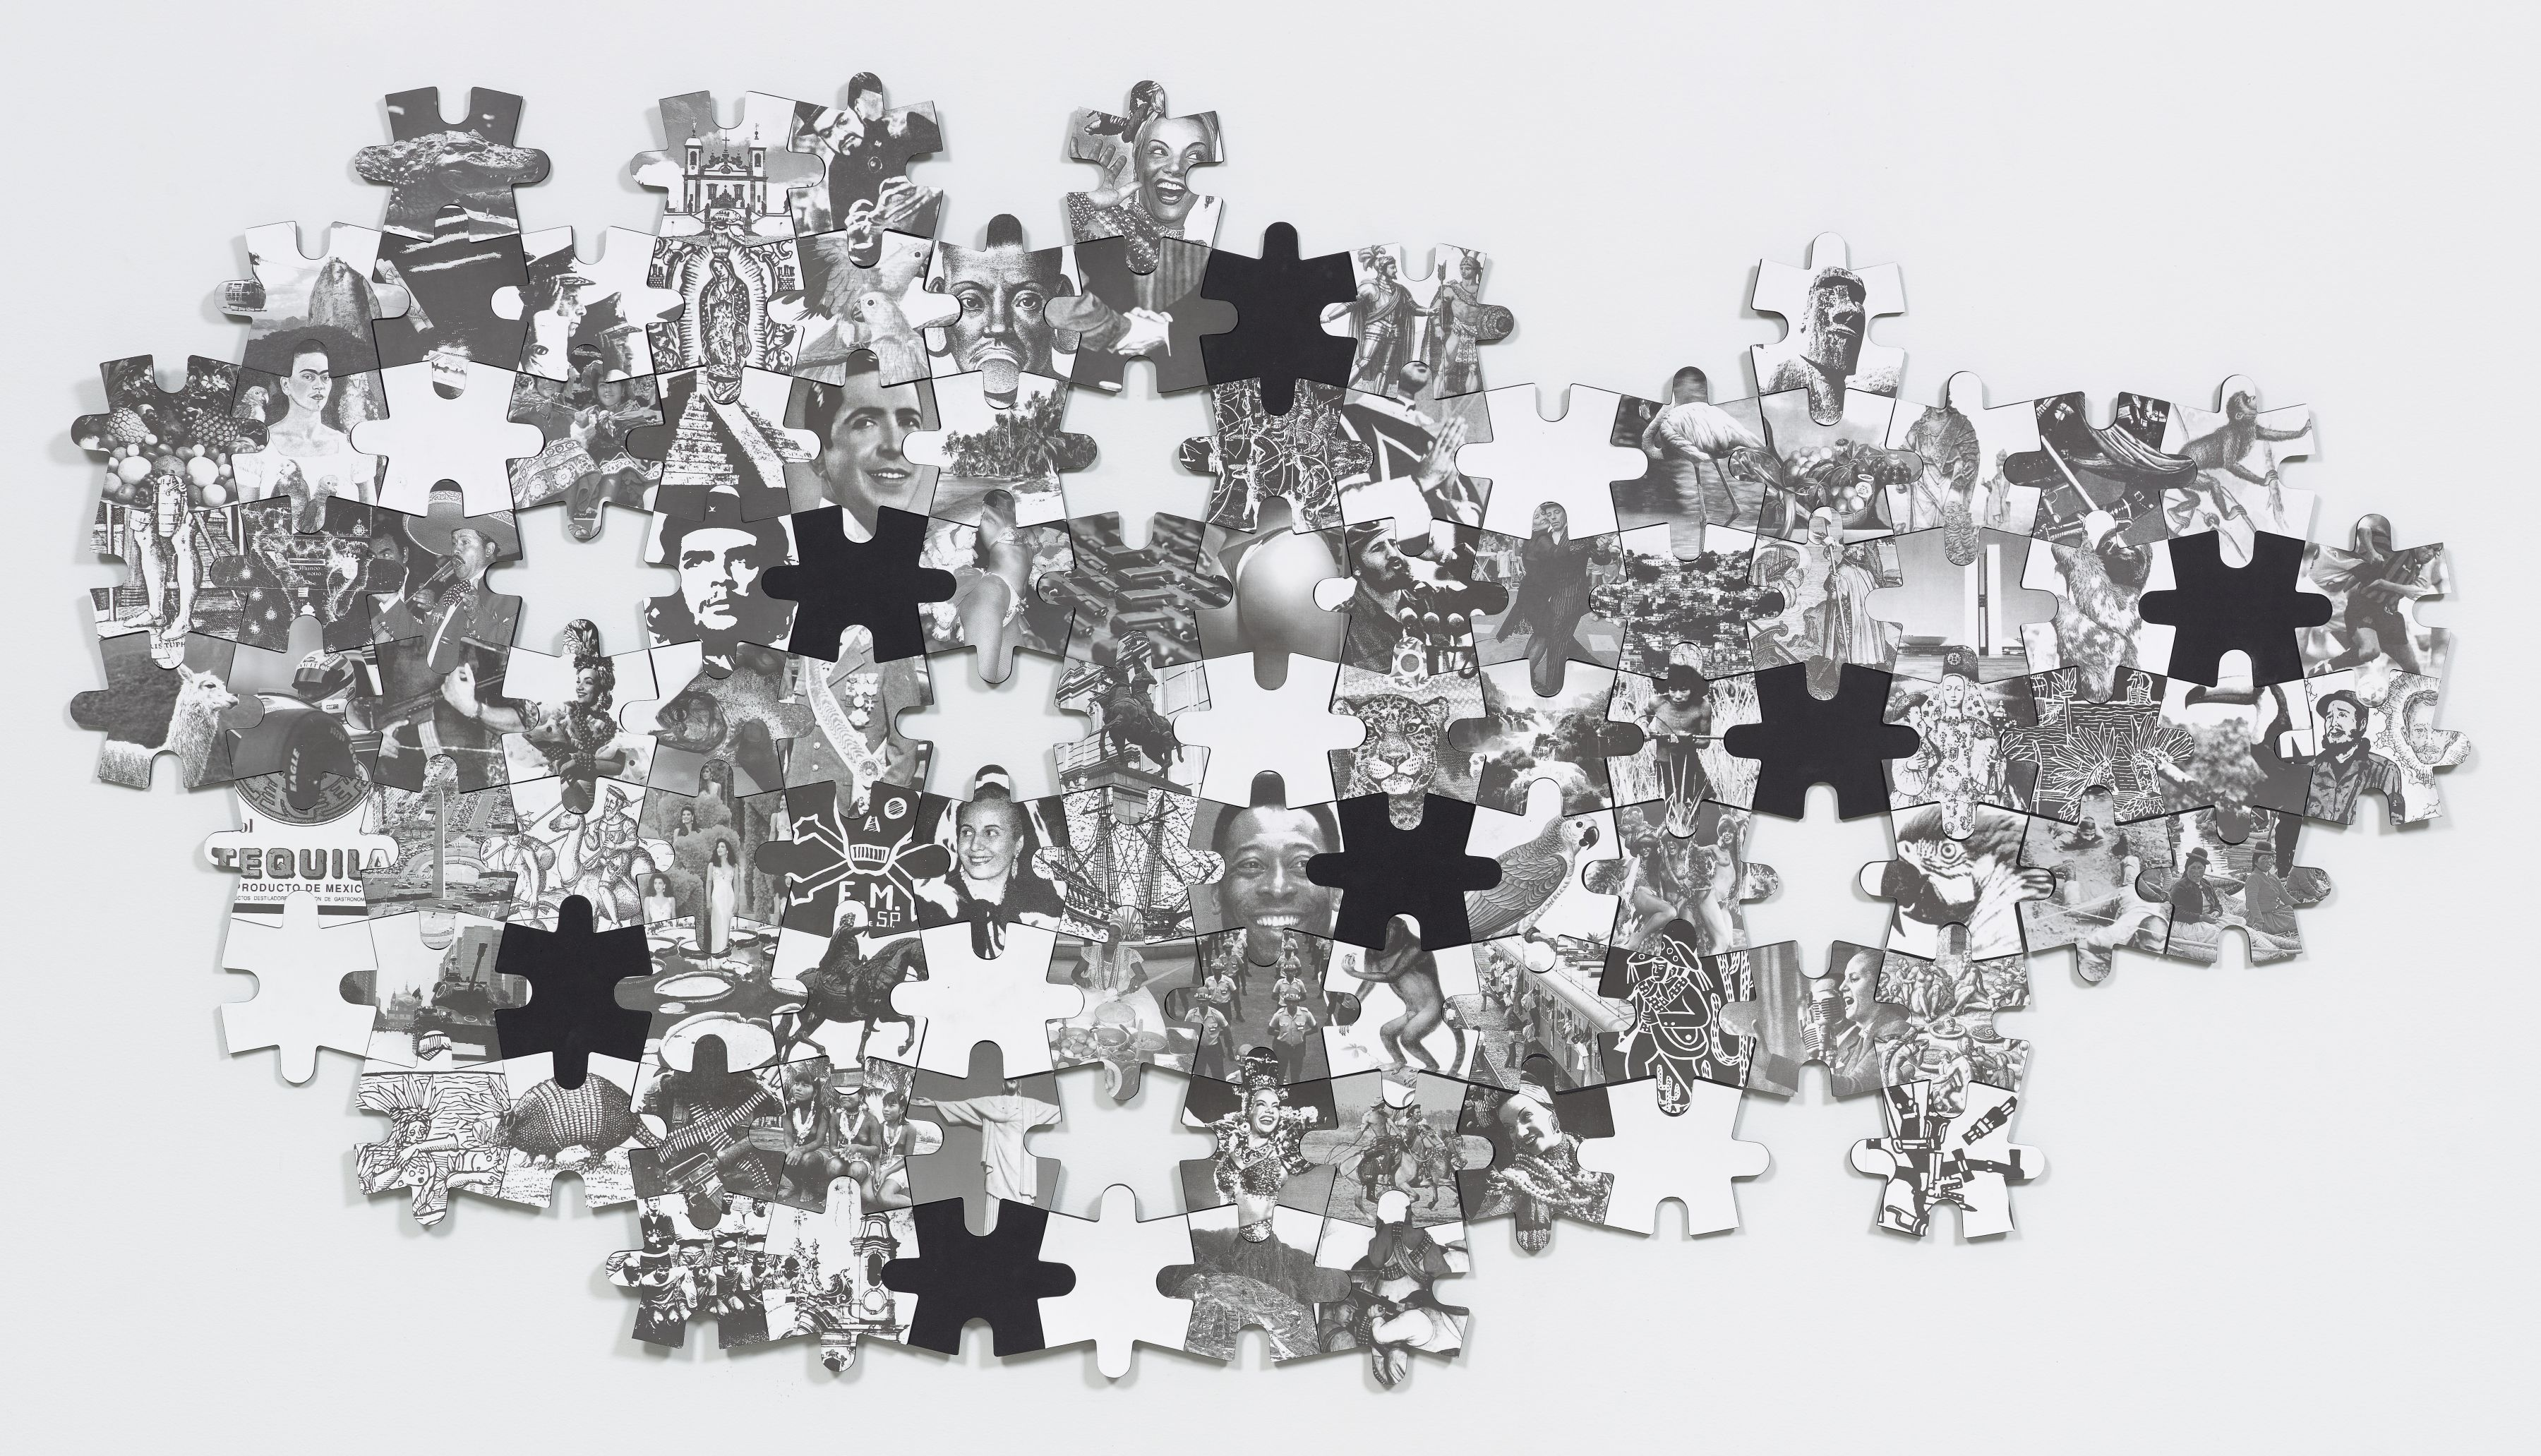 Regina Silveira, To be continued... (Latin American Puzzle), 2001, Lithography & Serigraphy